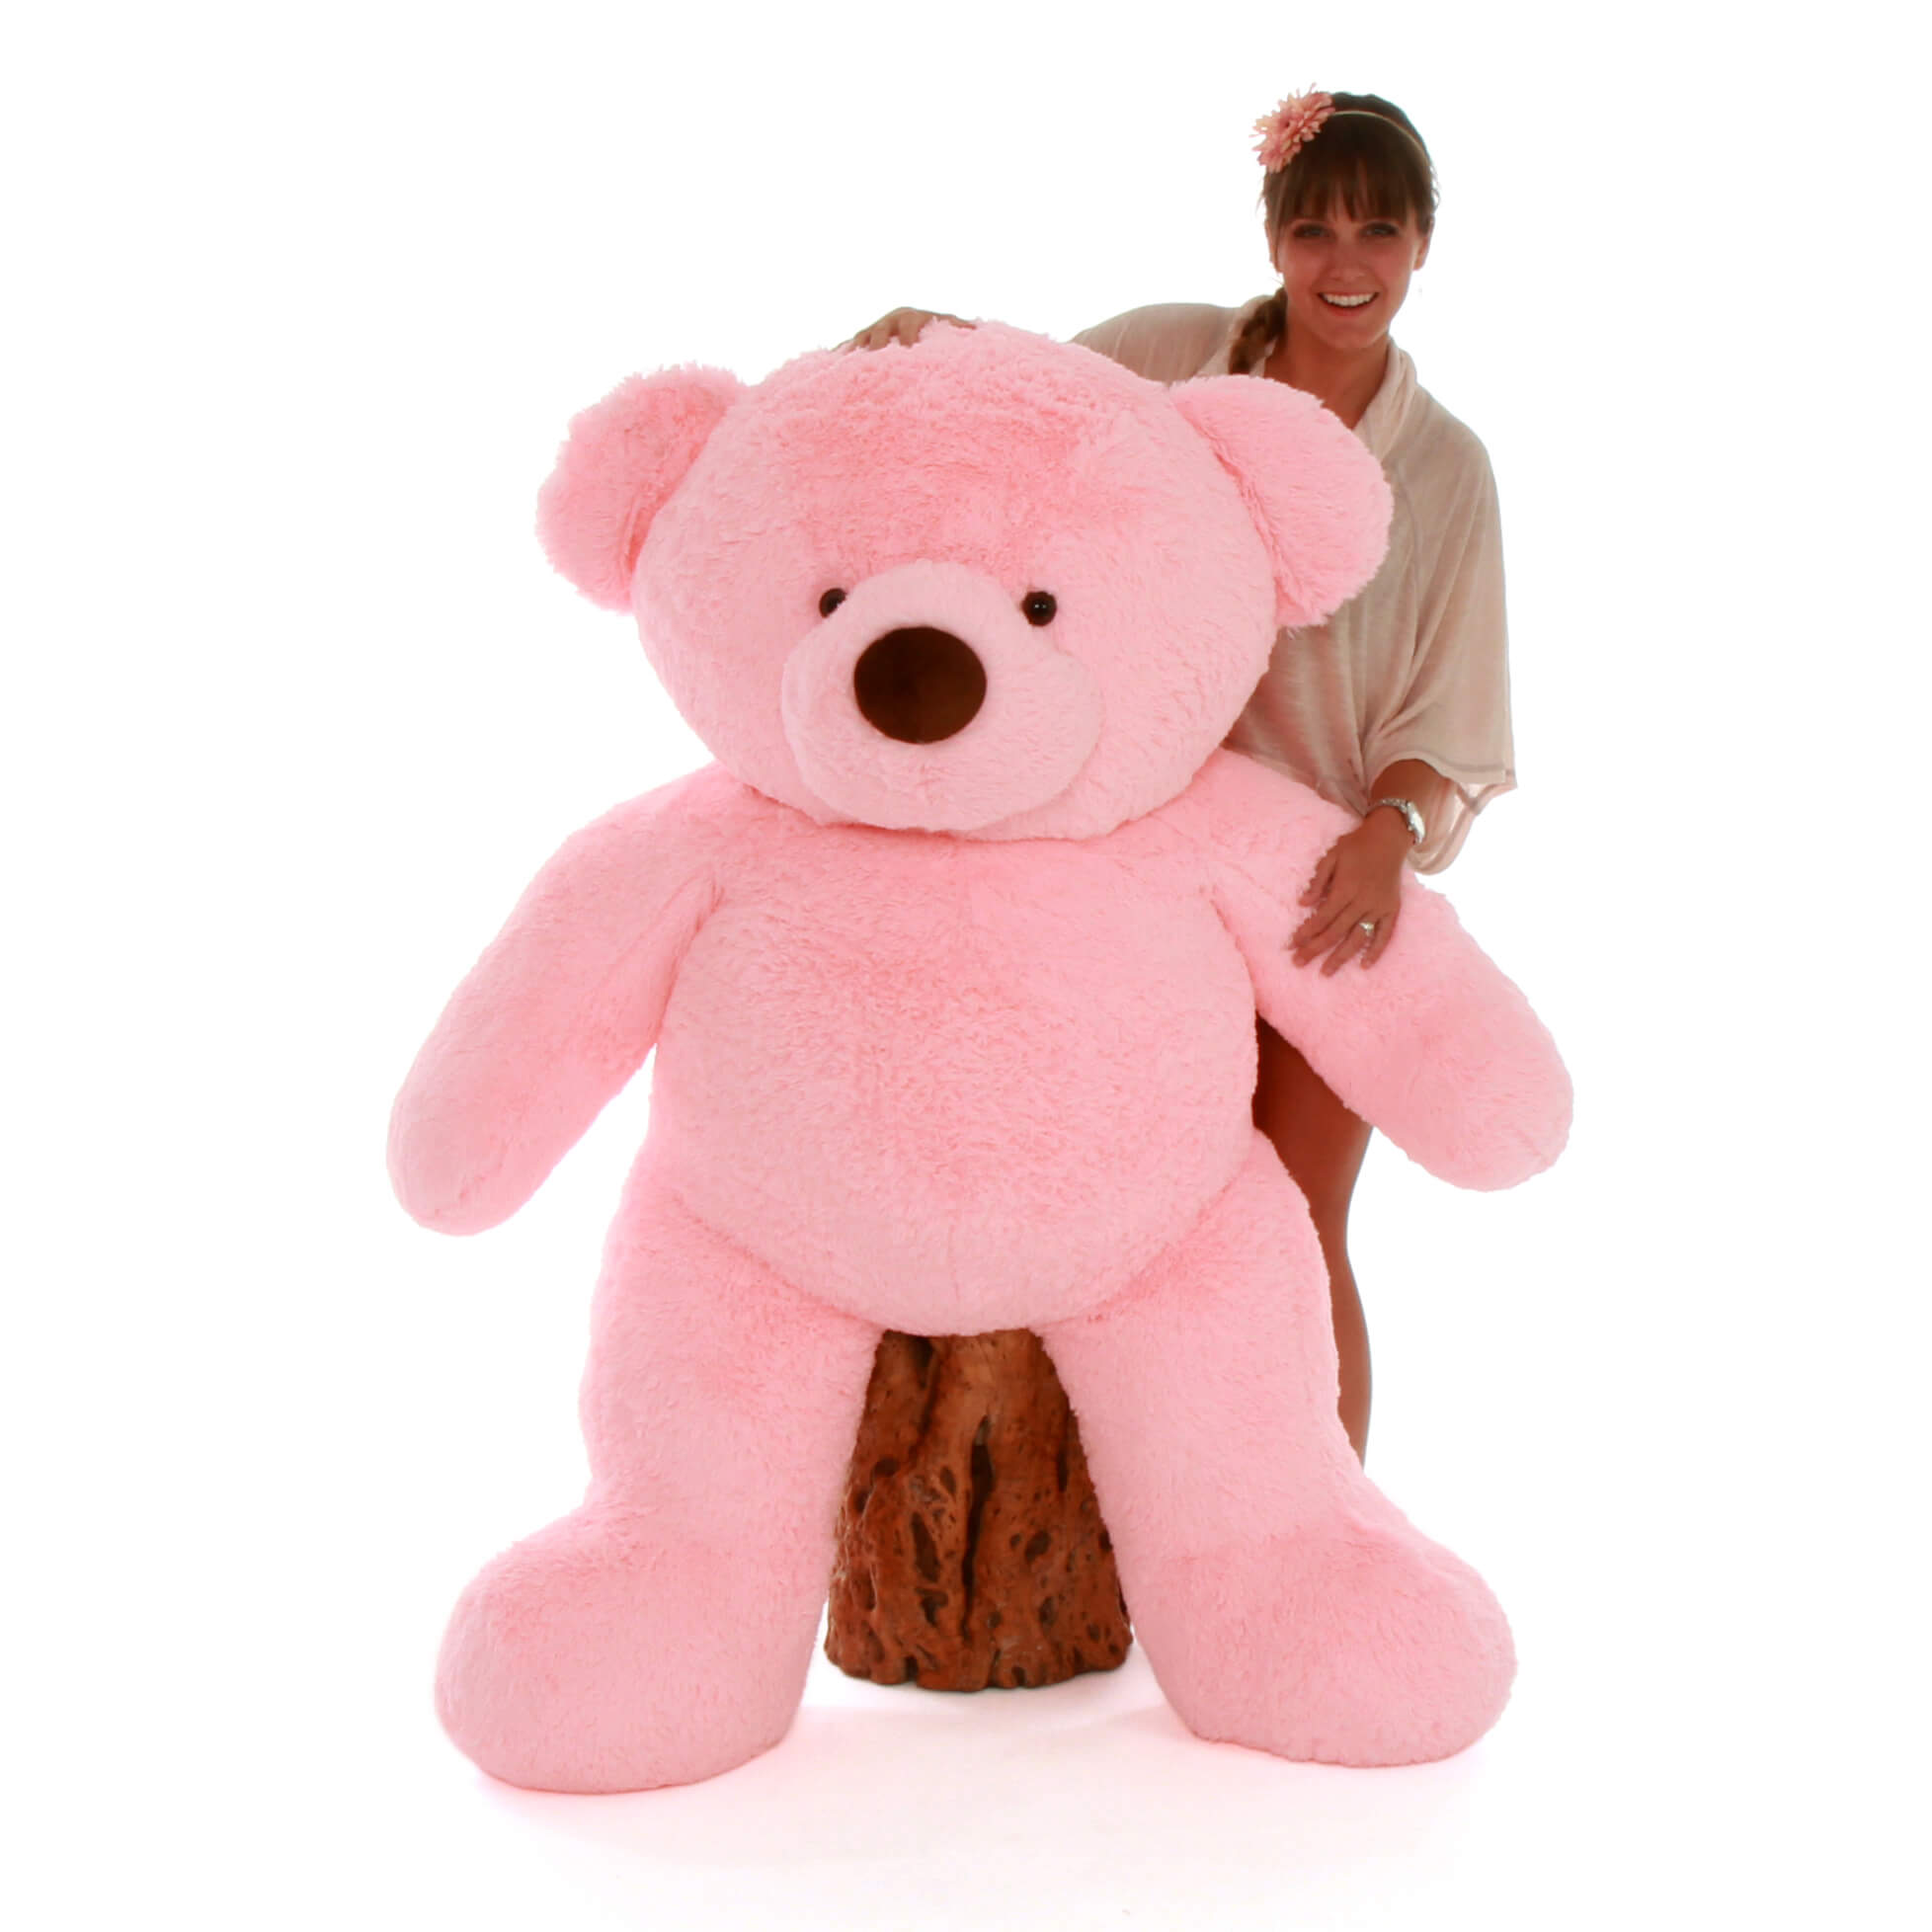 gigi-chubs-60in-giant-teddy-huggable-and-soft-bear-1.jpg